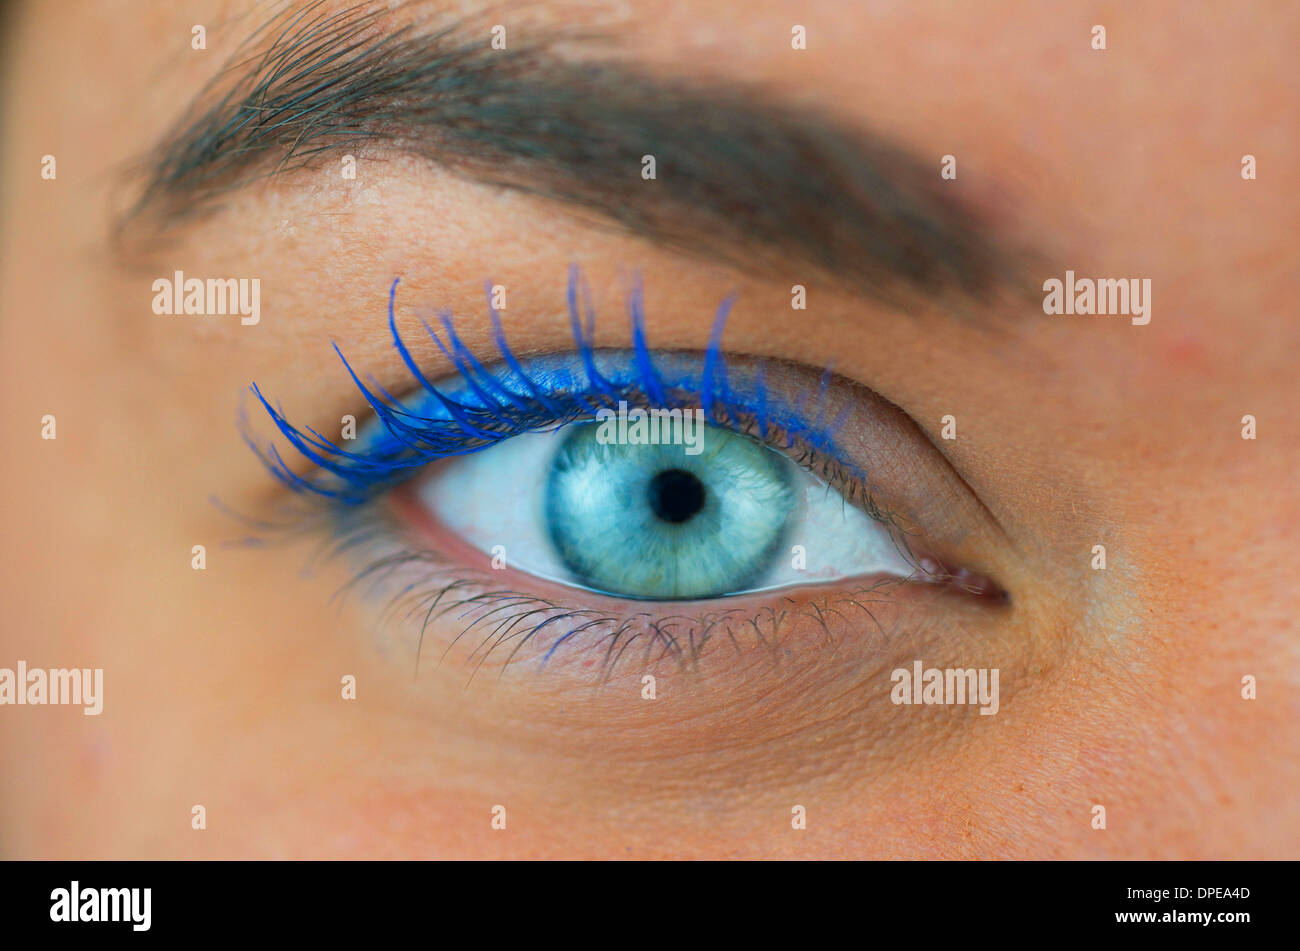 Eye Socket Stock Photos & Eye Socket Stock Images